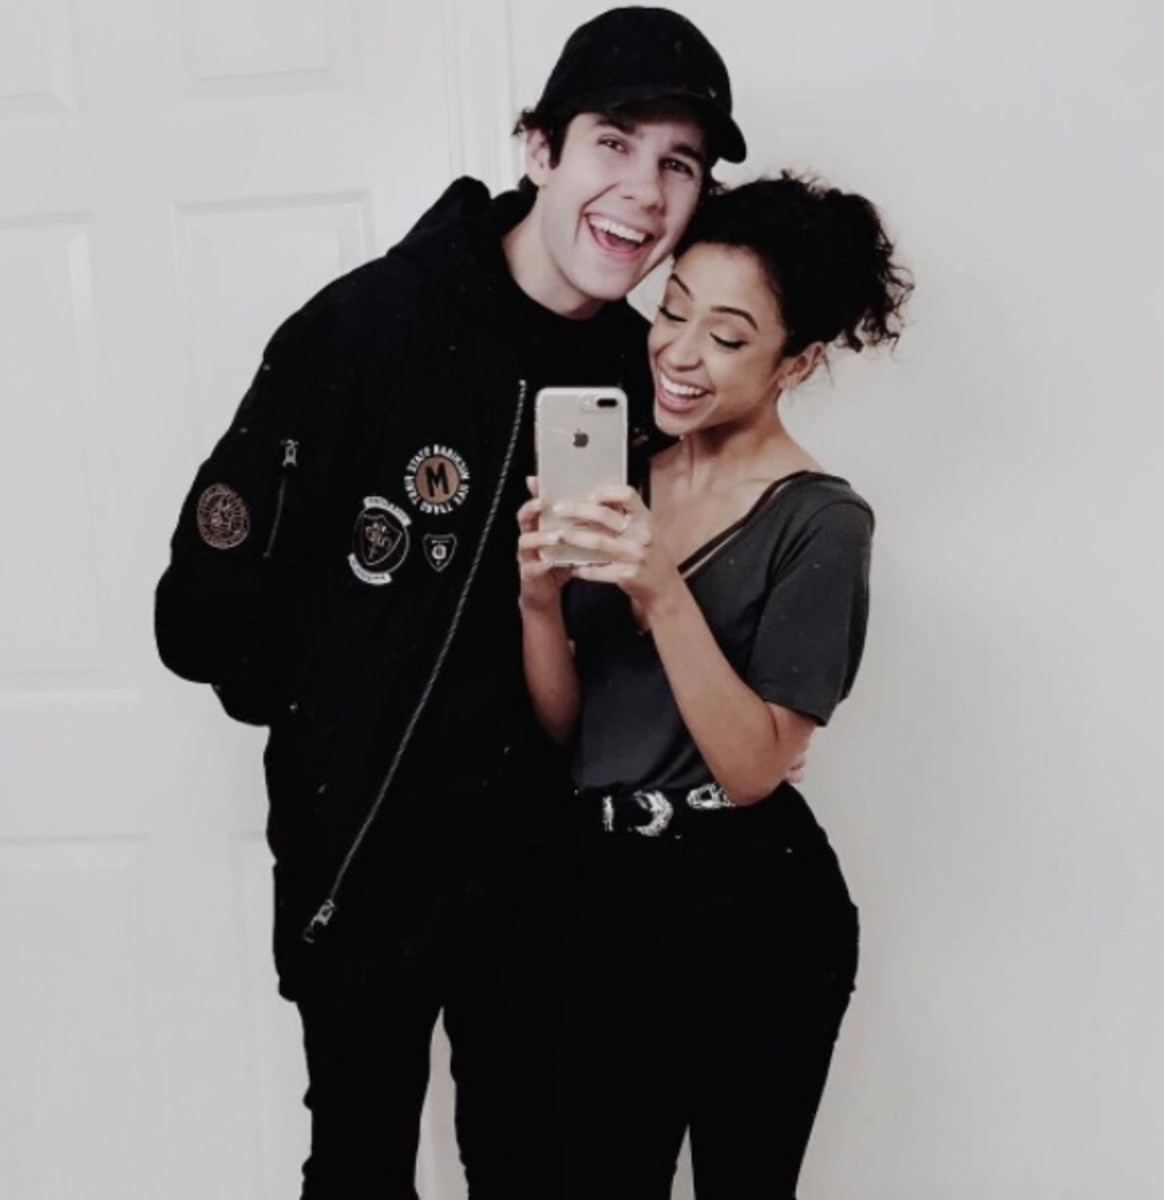 Top 5 Cutest YouTube Couples That Are Totally Relationship Goals